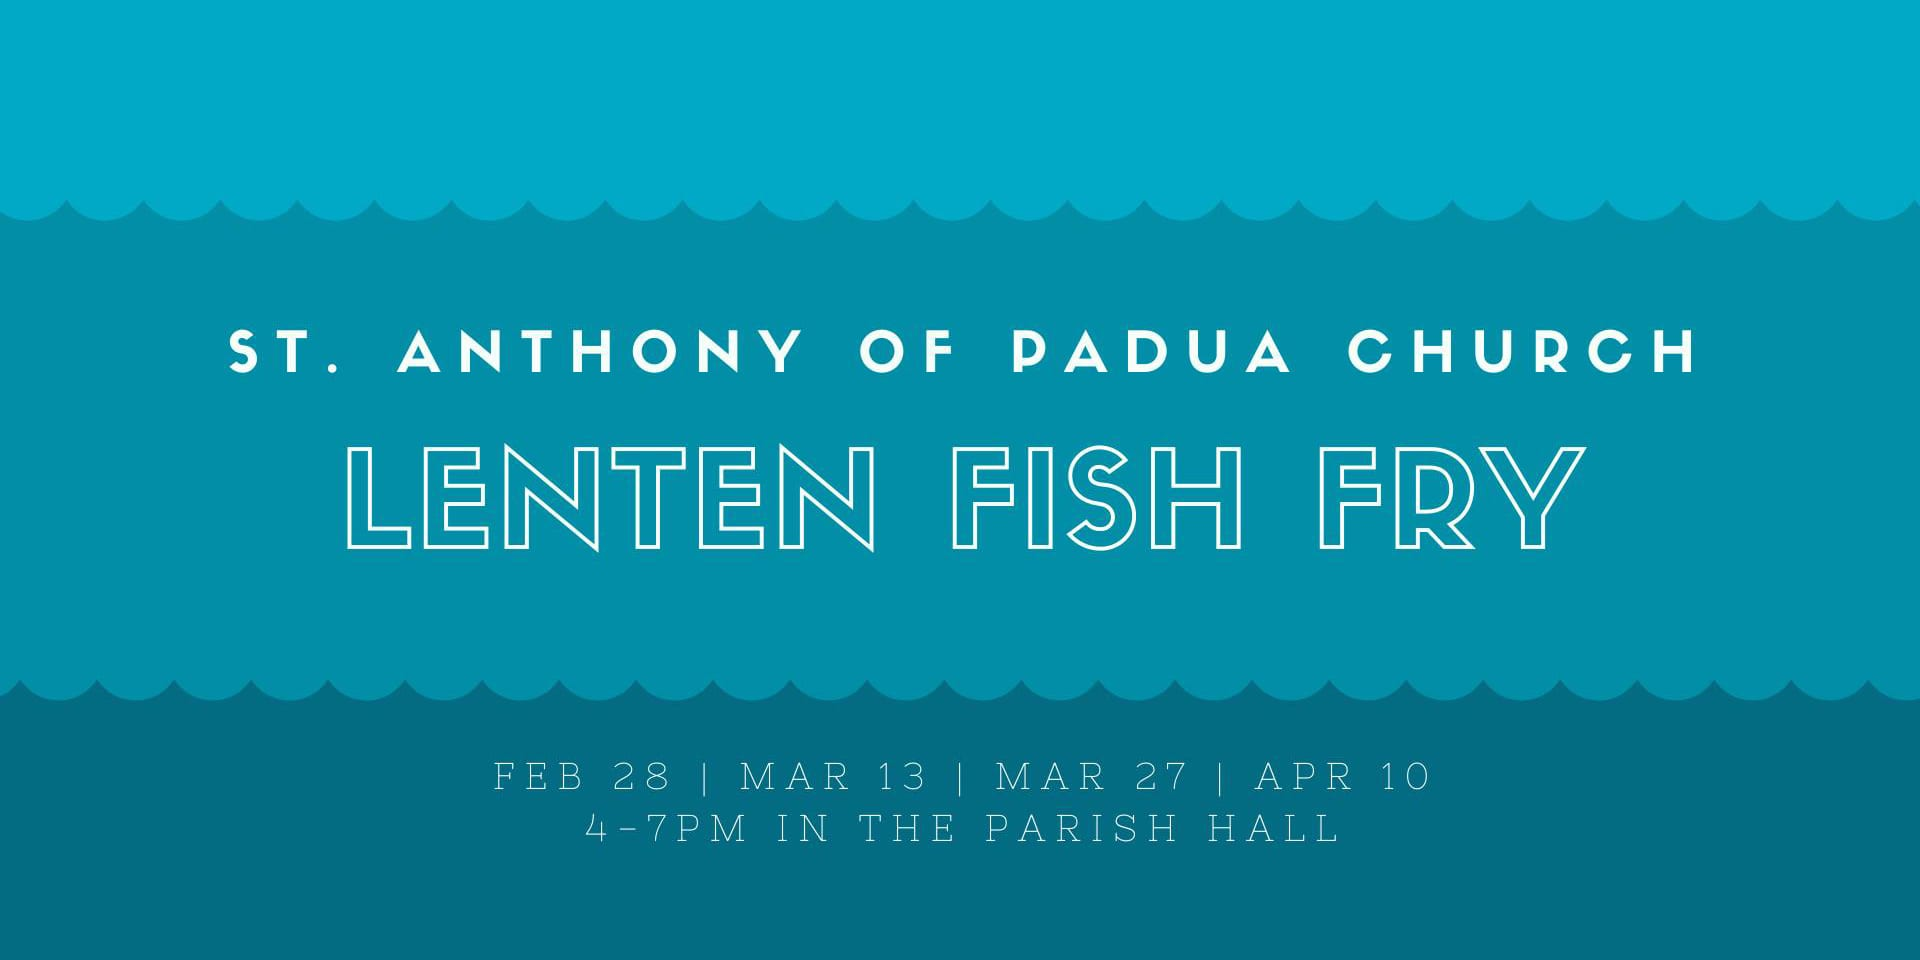 St. Anthony of Padua Lenten Fish Fry.